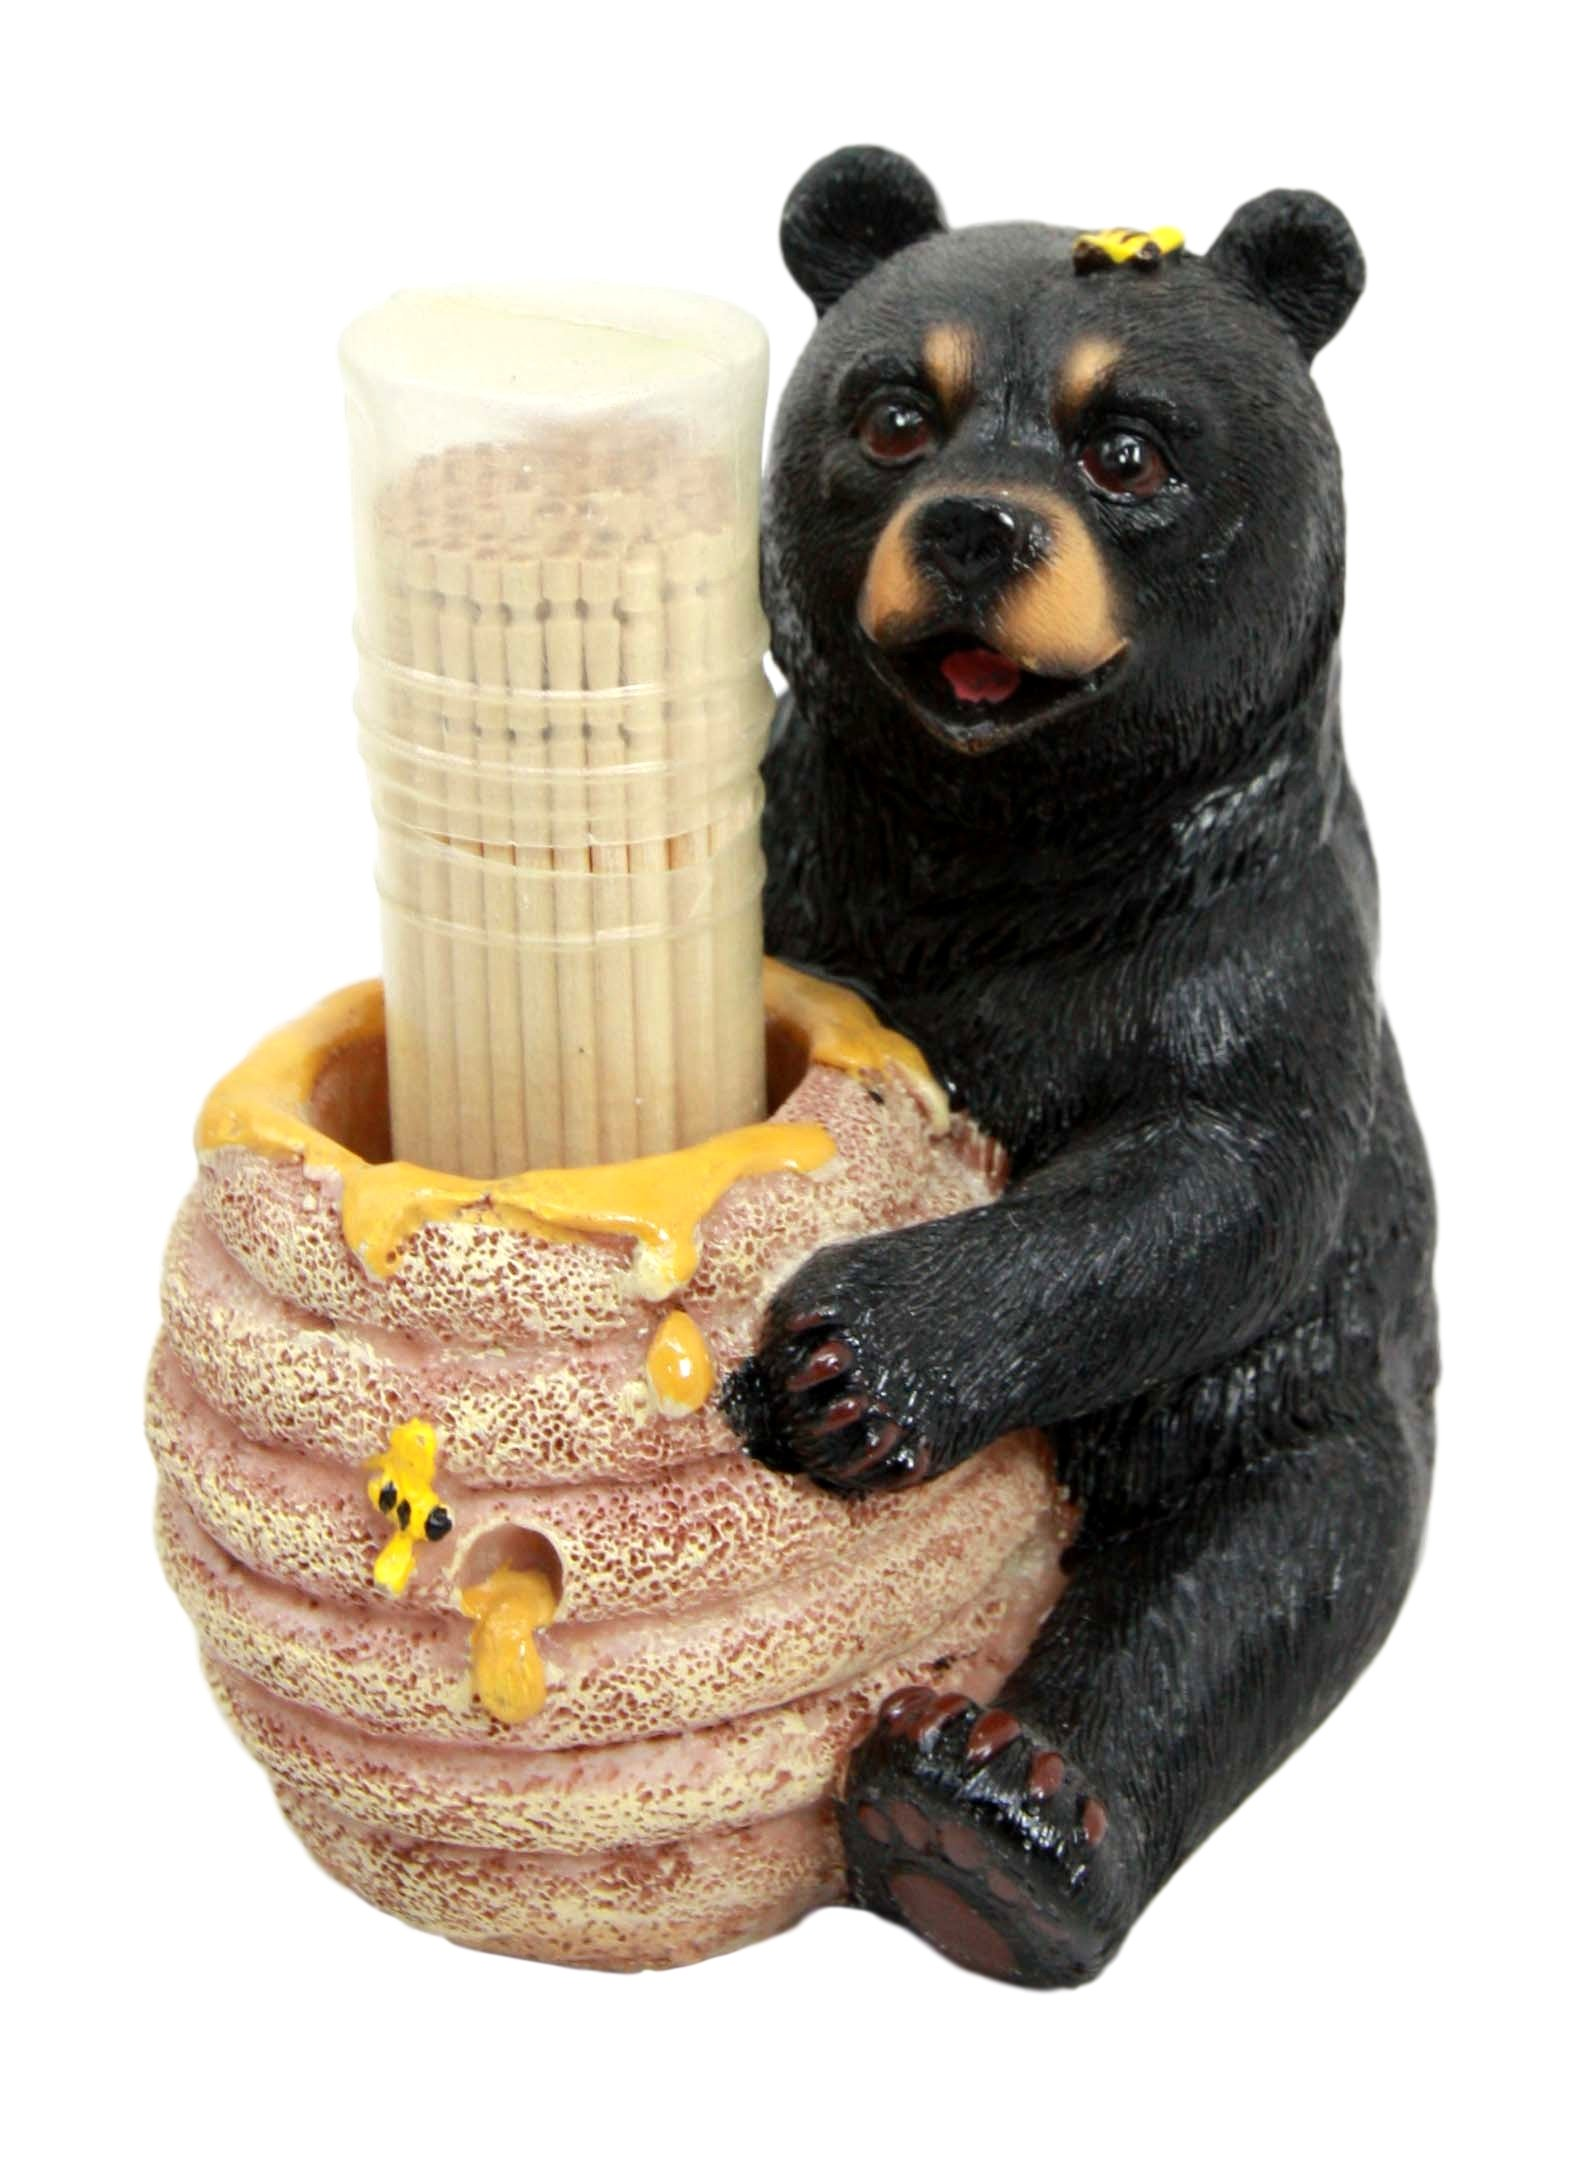 Ebros Honey Black Bear With Bee Hive Toothpick Holder Statue With Toothpicks Honeycomb Bear With Bee Hive Pot Figurine by Ebros Gift